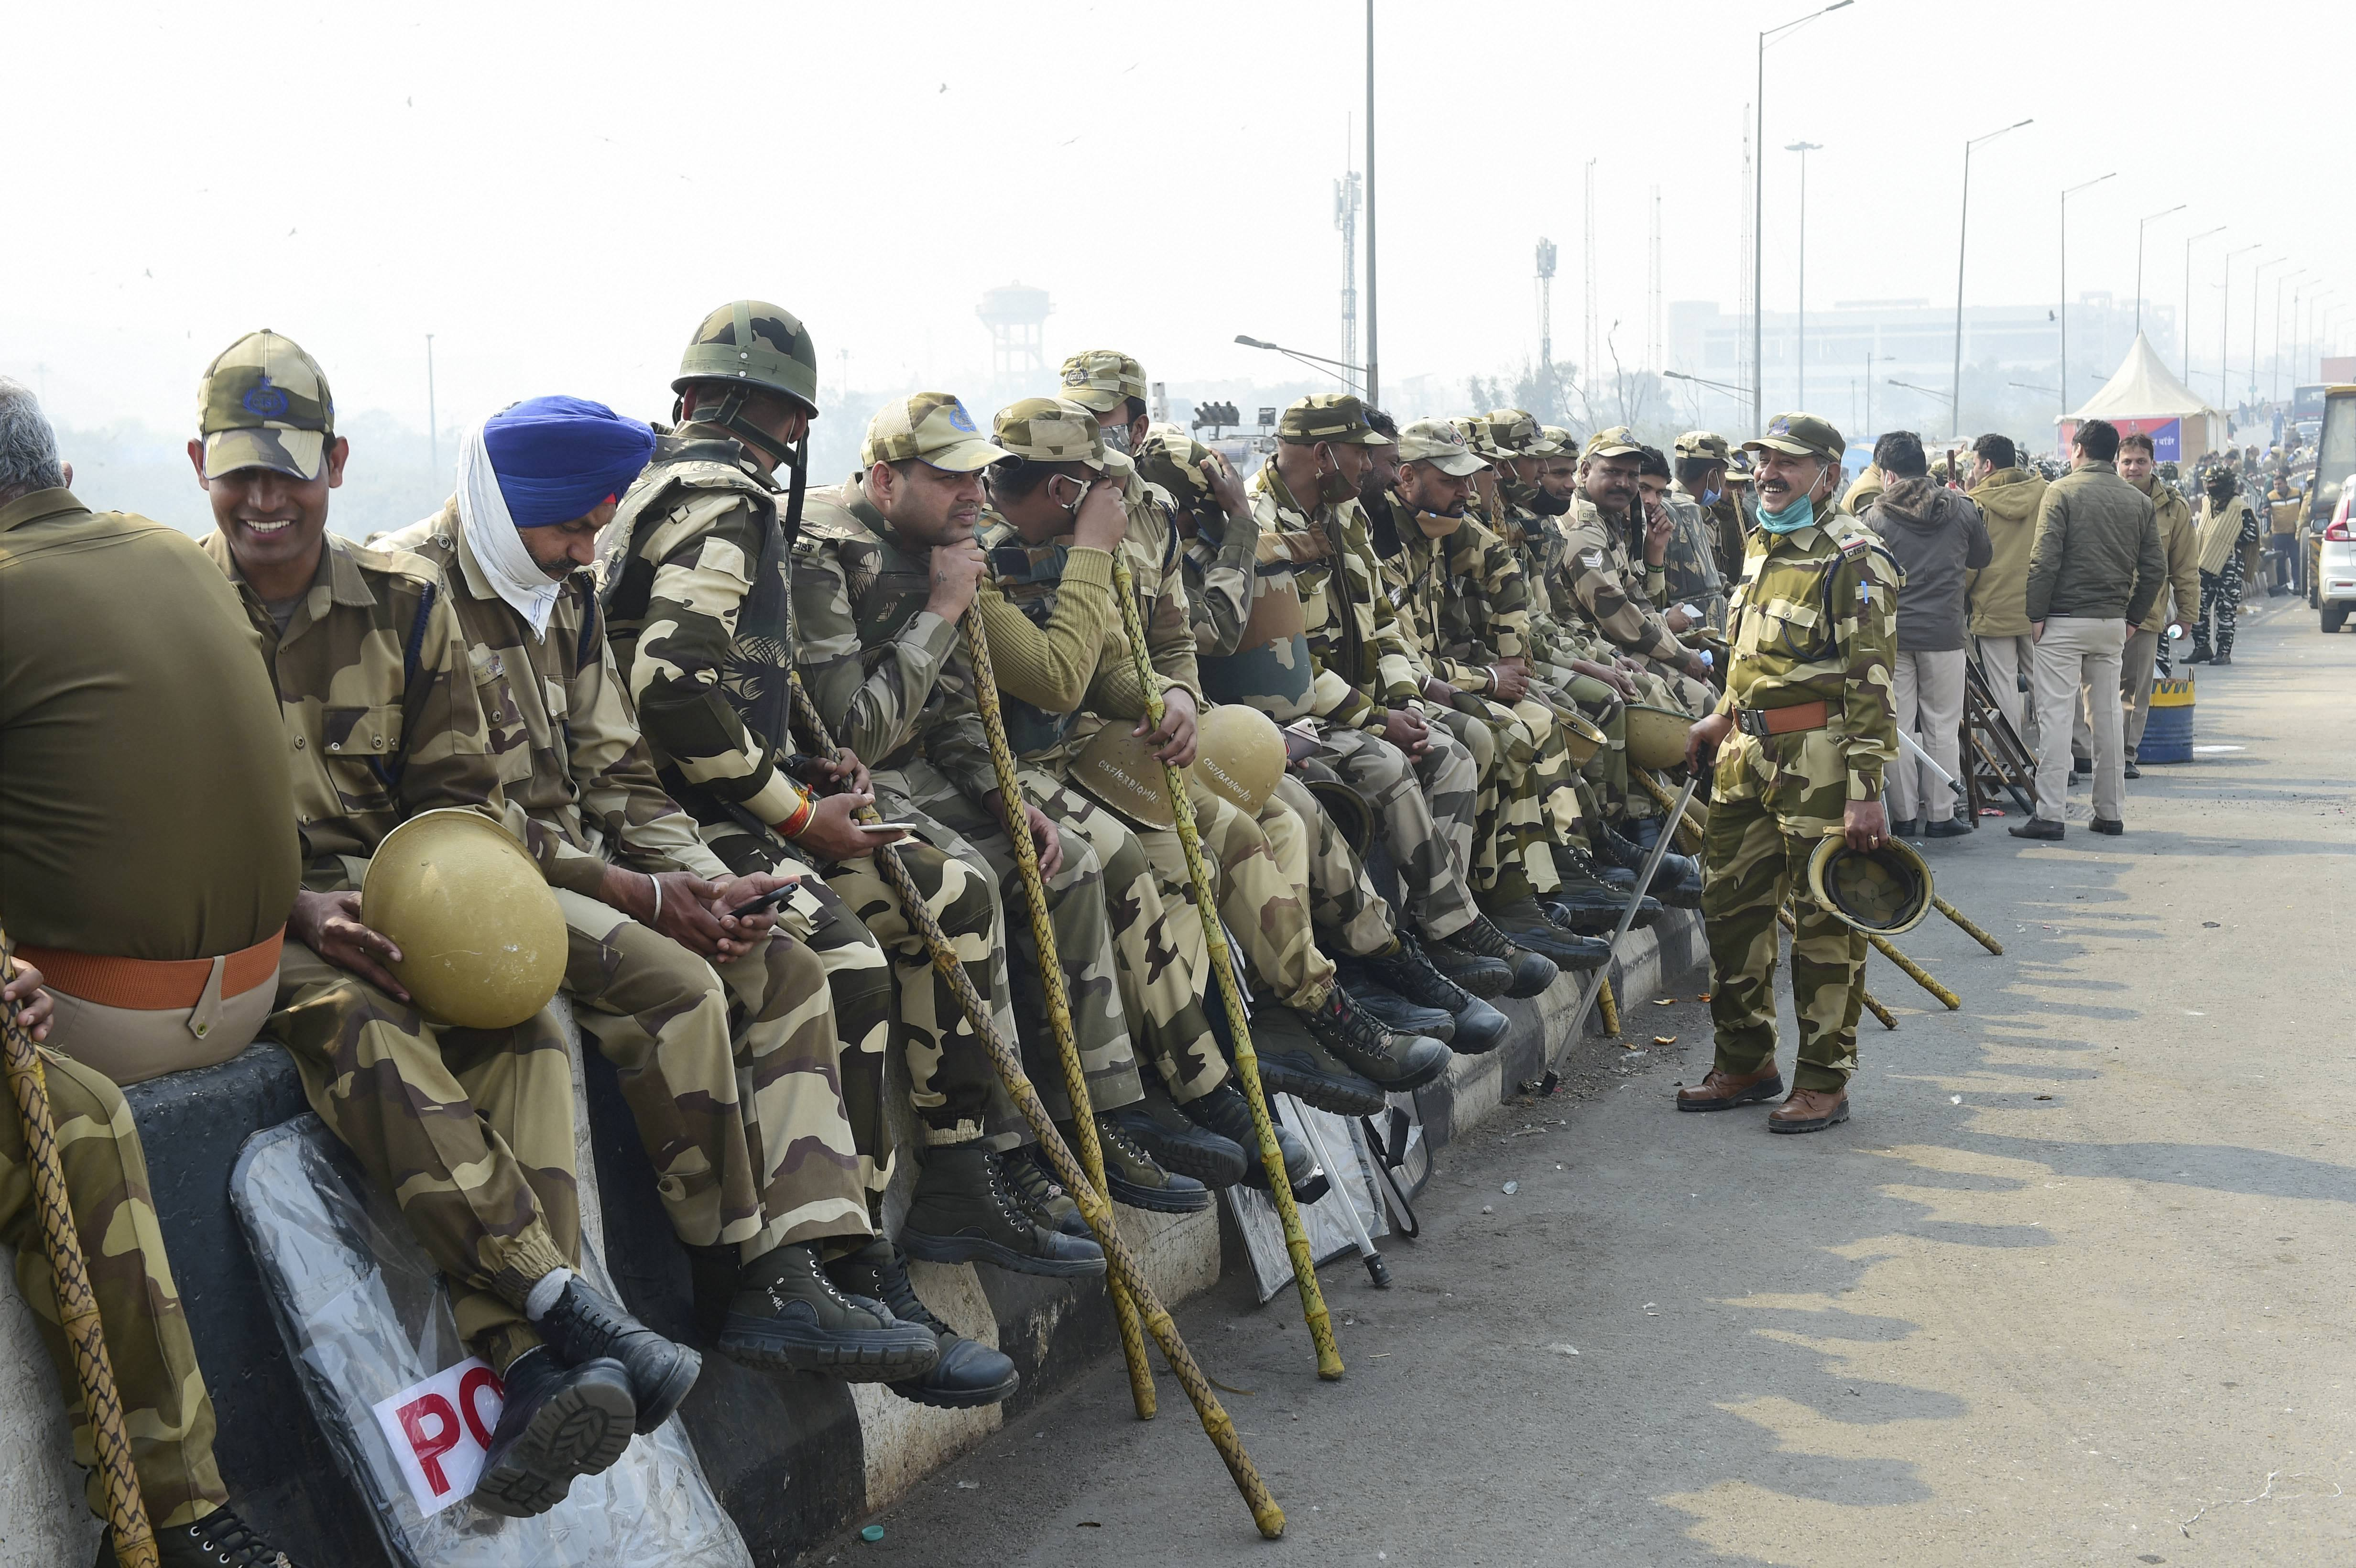 New Delhi: Security personnel keep vigil at Ghazipur border during the ongoing farmers' agitation against Centre's farm reform laws, in New Delhi, Monday, Feb. 1, 2021. (PTI Photo/Kamal Kishore)(PTI02_01_2021_000093B)